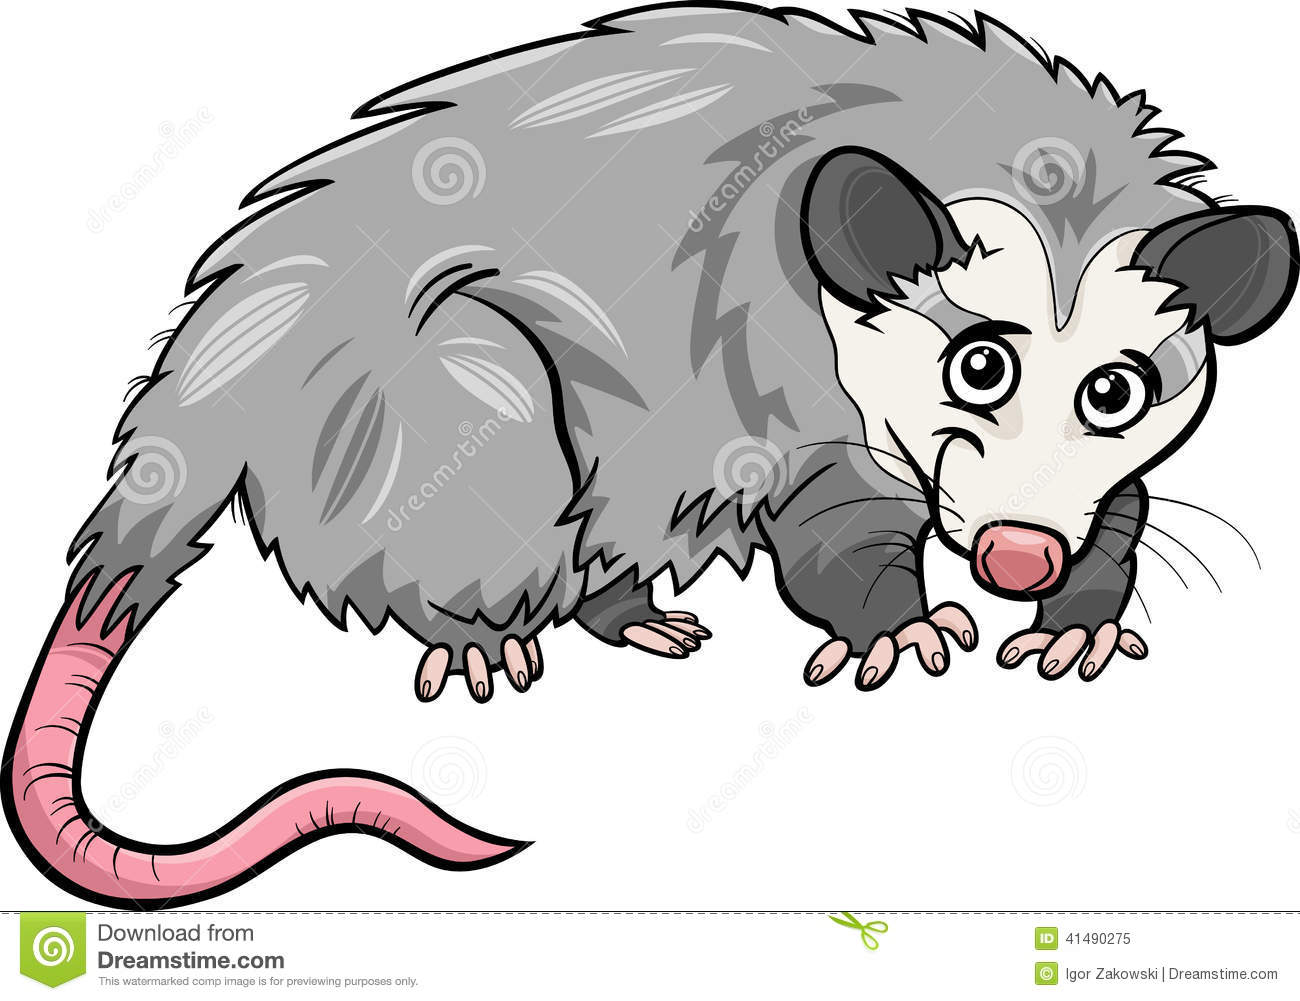 Possum clipart cartoon #1